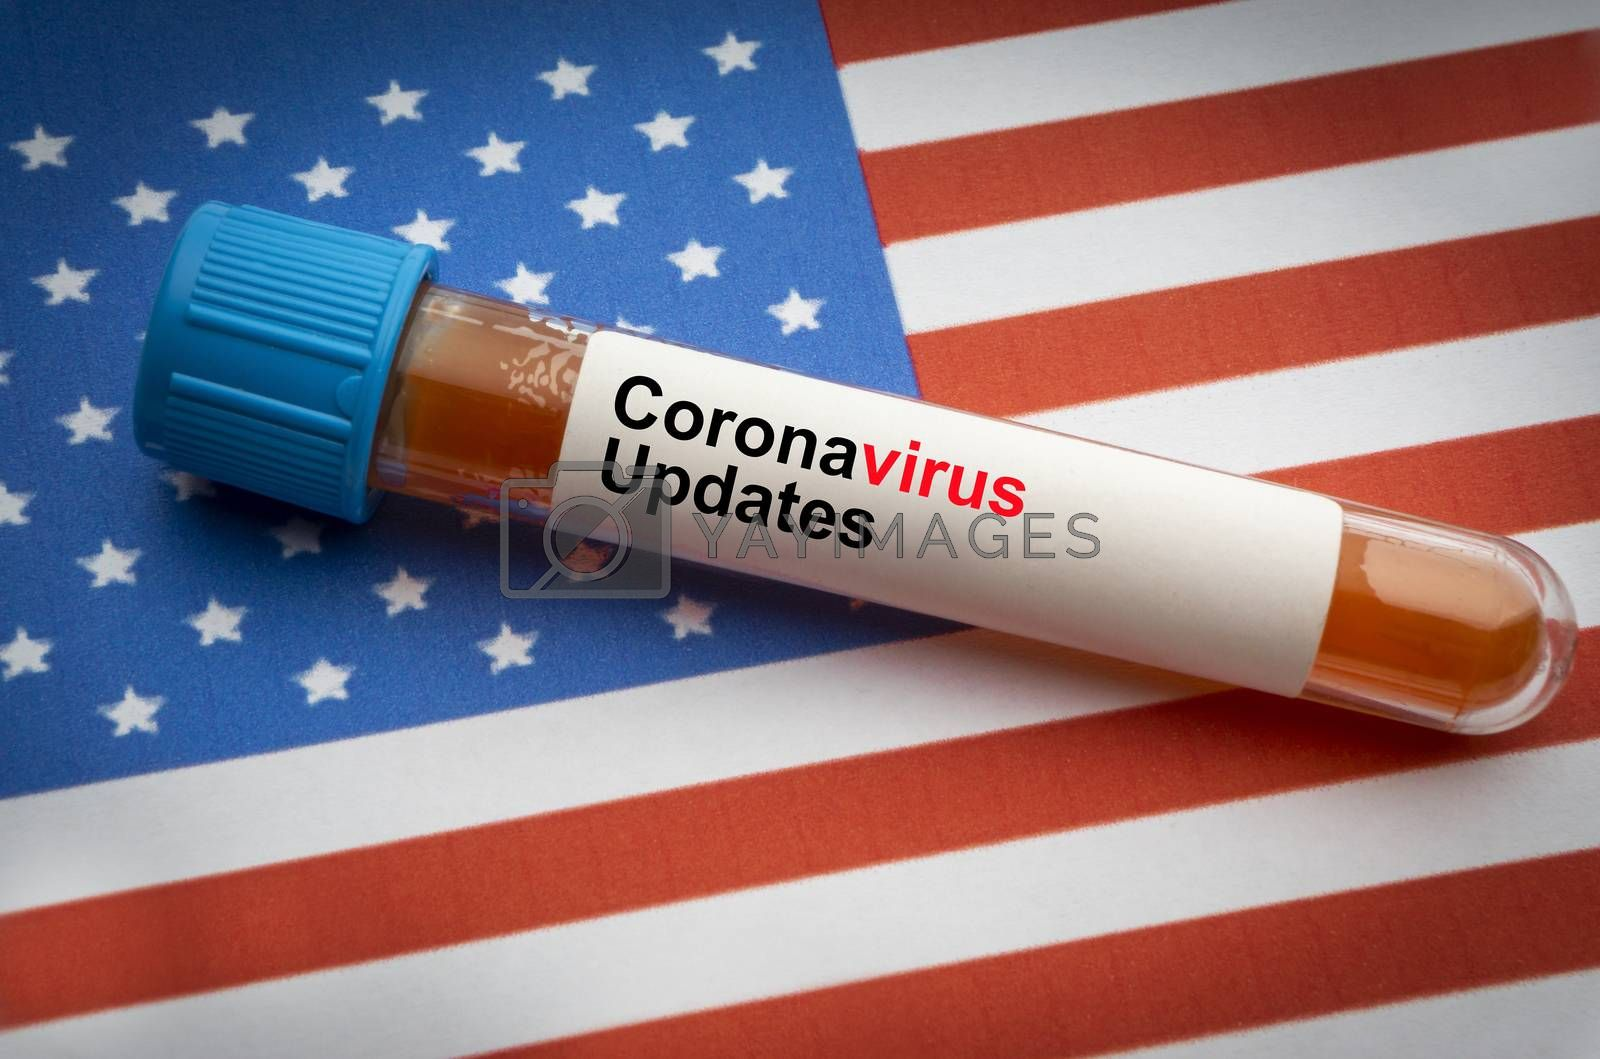 CORONAVIRUS COVID-19 UPDATE text and blood sample vacuum tube on America flags background. Covid-19 or Coronavirus Concept